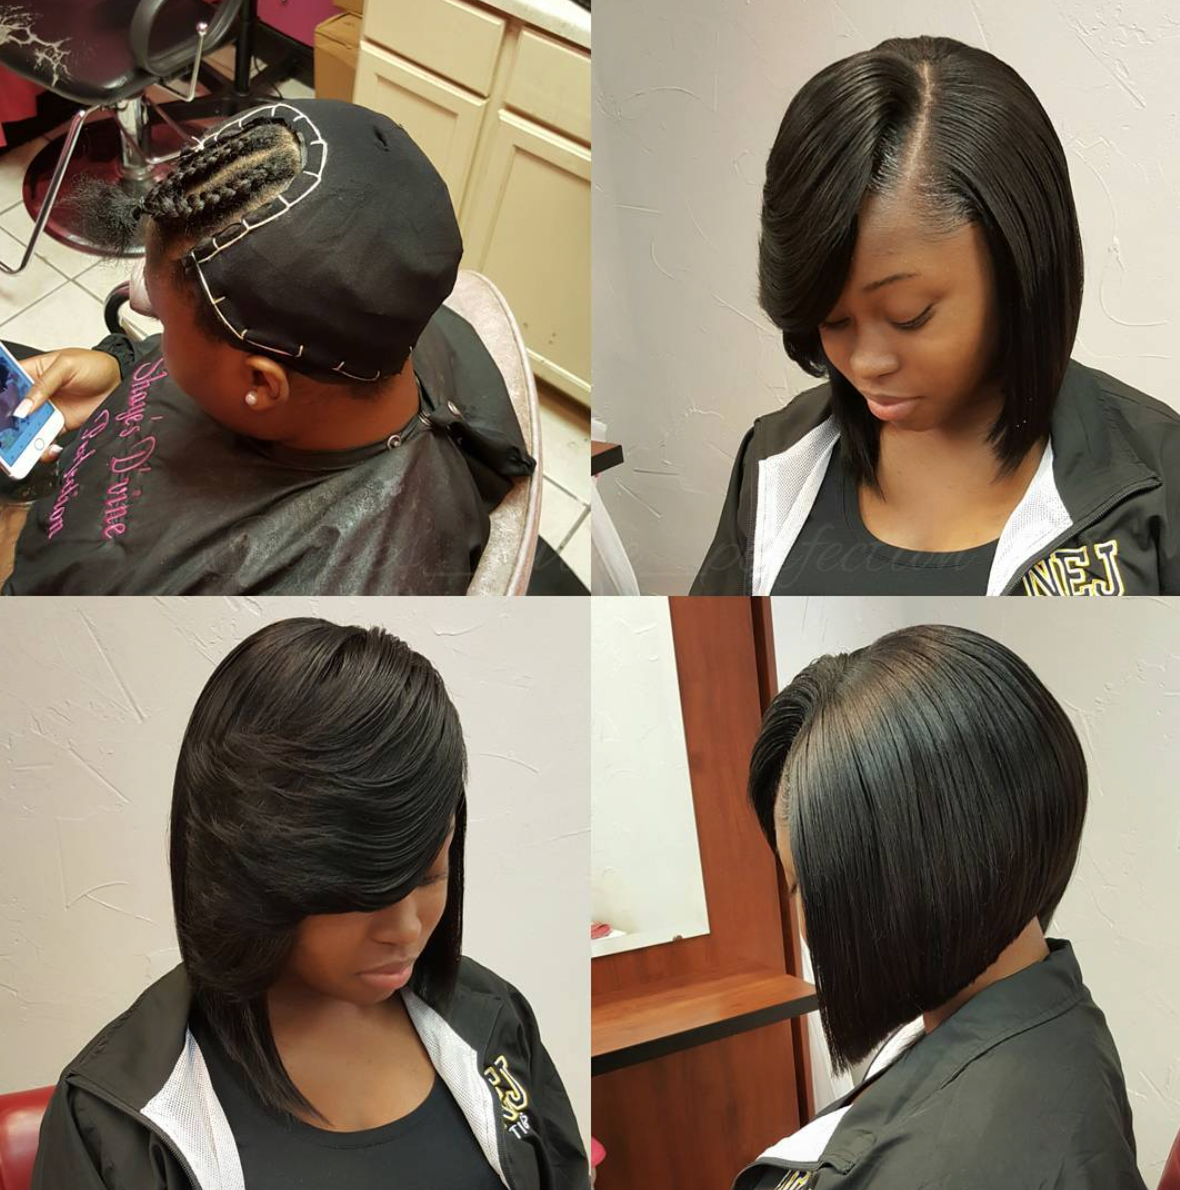 pin by nadine washington on bob life | short hair styles